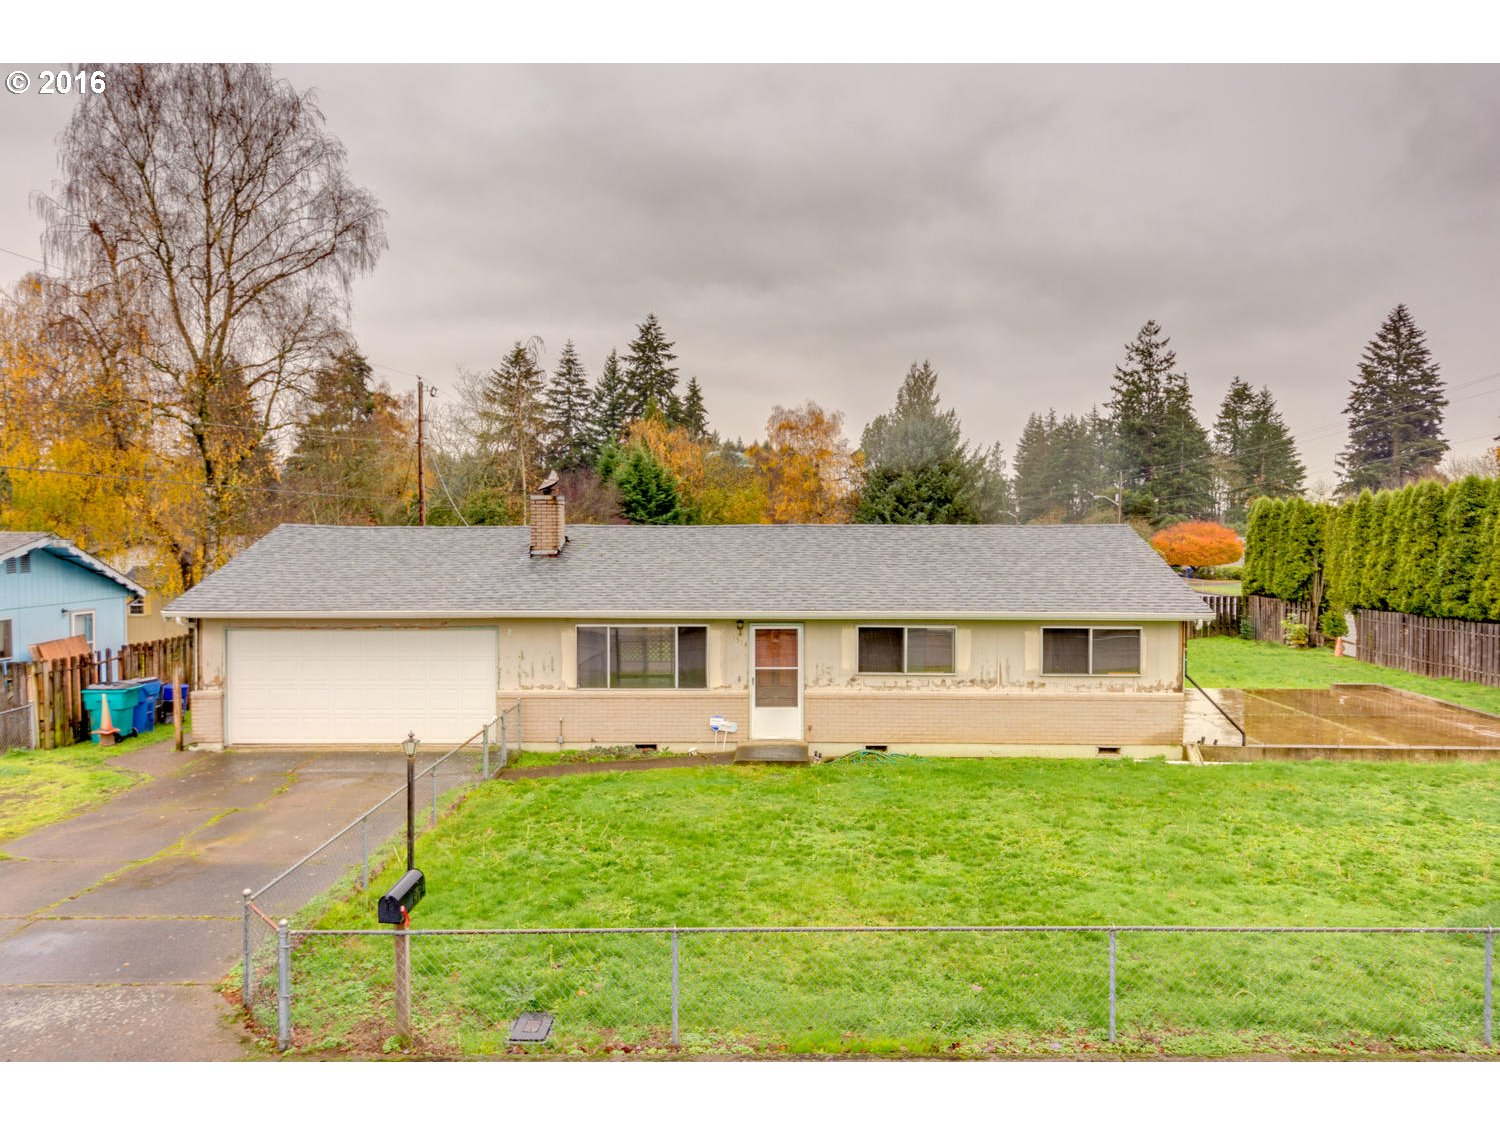 998 sq. ft 3 bedrooms 1 bathrooms  House ,Vancouver, WA